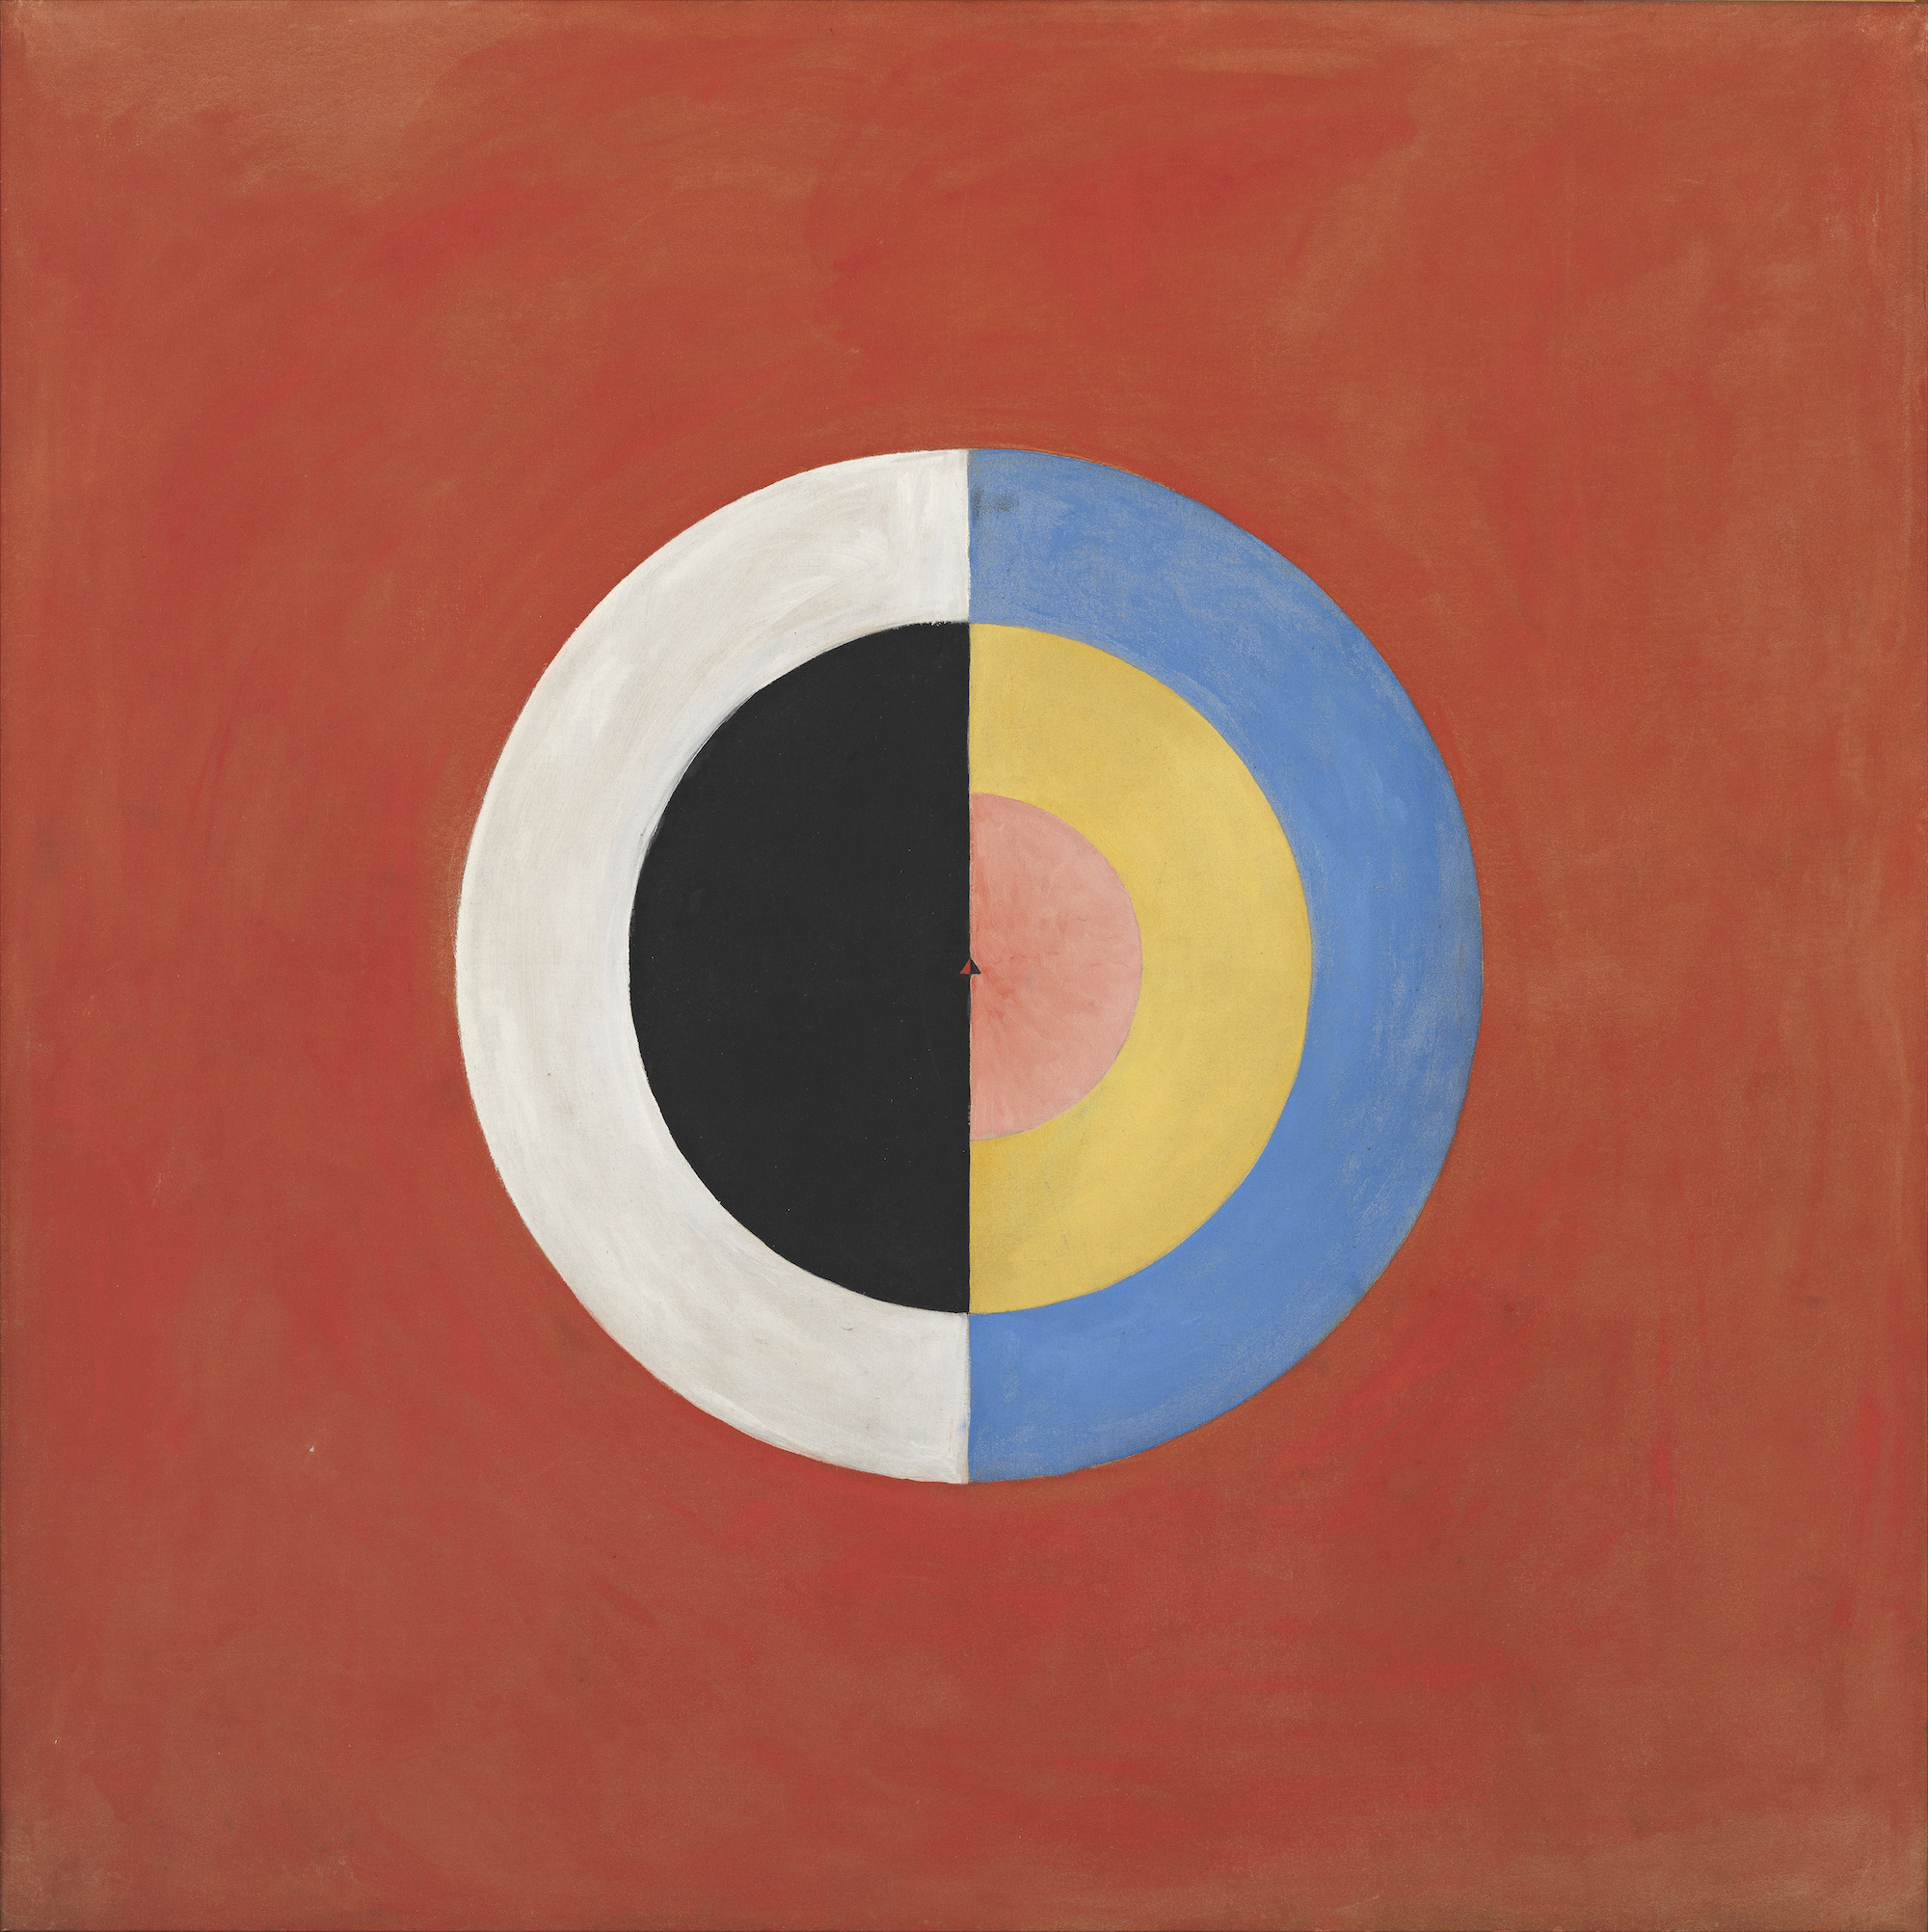 Hilma af Klint Group IX/SUW, The Swan, No. 17 (Grupp IX/SUW, Svanen, nr 17), 1915. Courtesy The Hilma af Klint Foundation, Stockholm